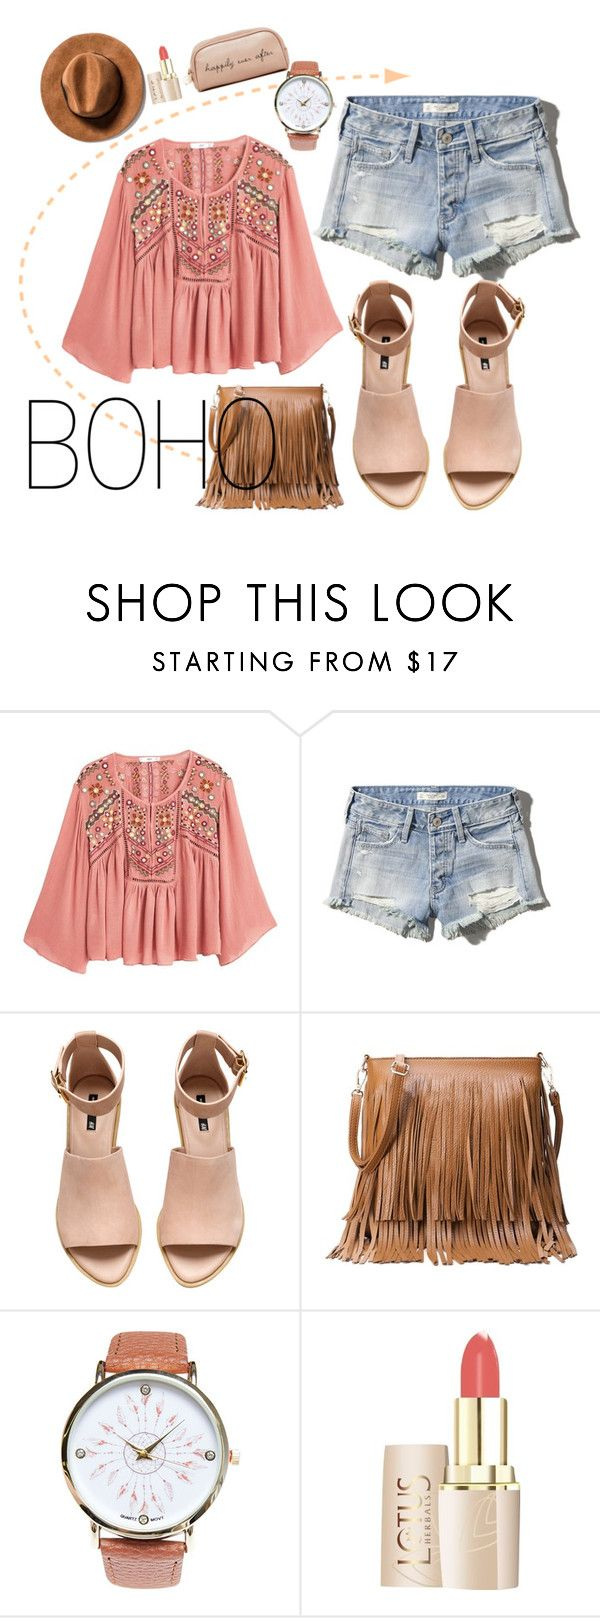 """""""boho"""" by camilazeballo on Polyvore featuring moda, MANGO, Abercrombie & Fitch, H&M, Wet Seal, Deux Lux, casualoutfit, Bohemian y nude"""